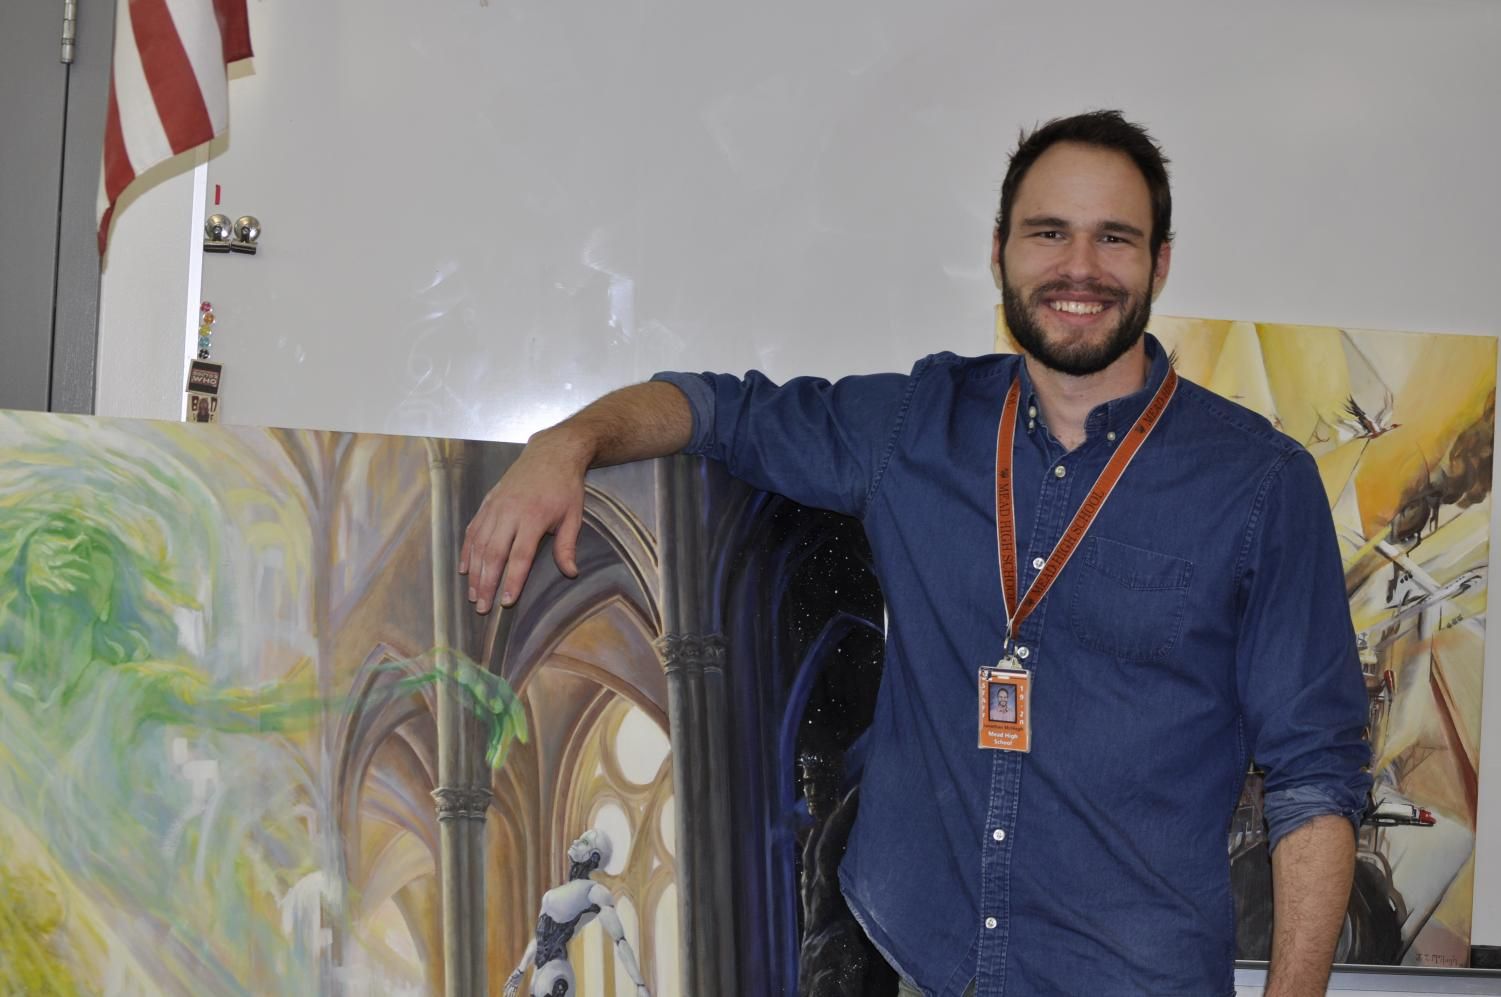 McHugh standing next to his biggest painting.